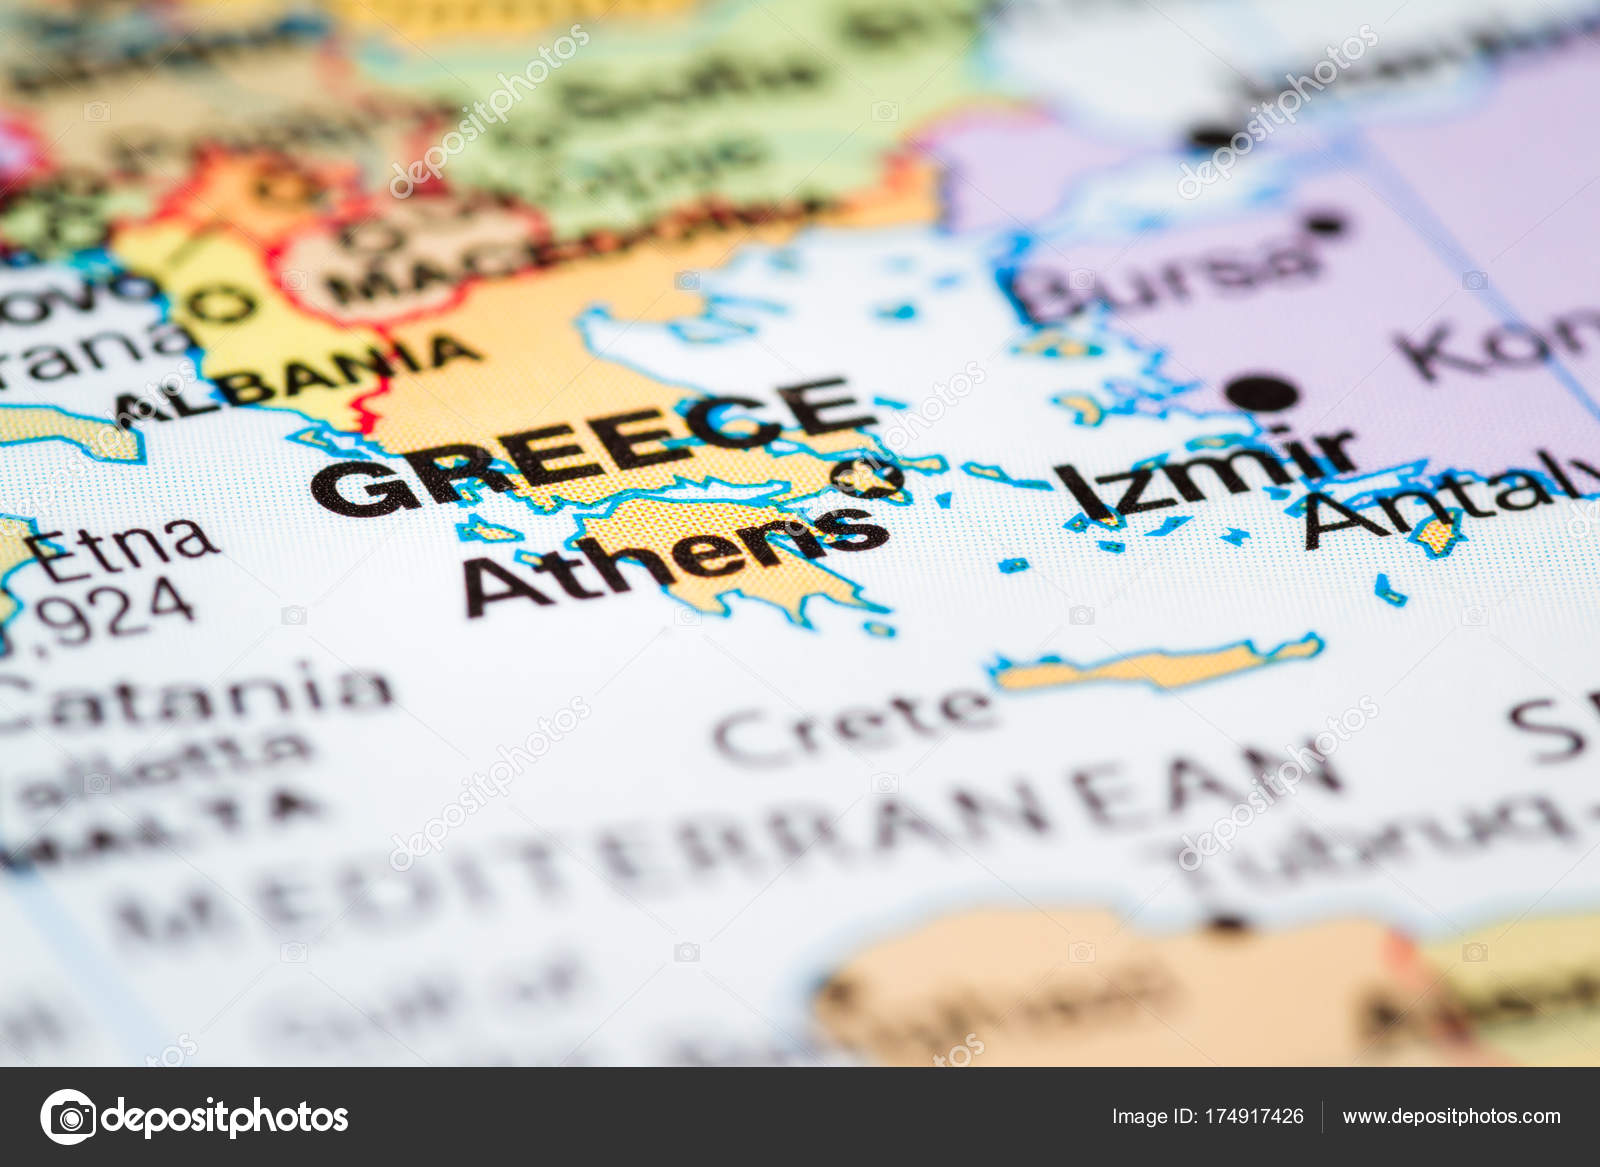 Athens greece on a map stock photo wollertz 174917426 close up of a world map with greece in focus photo by wollertz gumiabroncs Choice Image